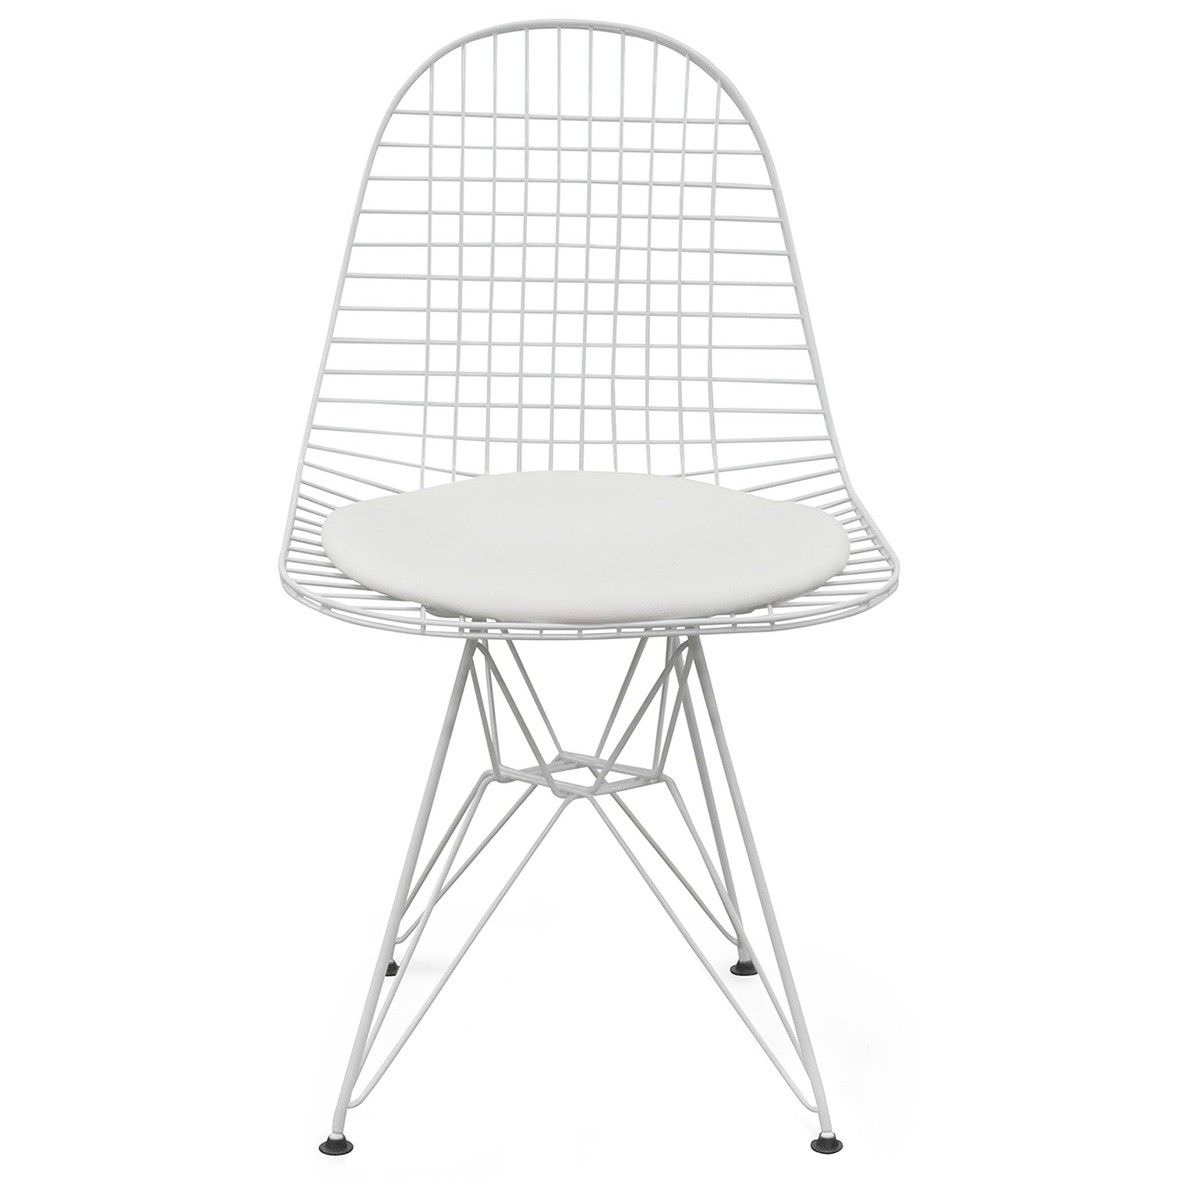 Replica Eames Wire Chair with PU Seat, White